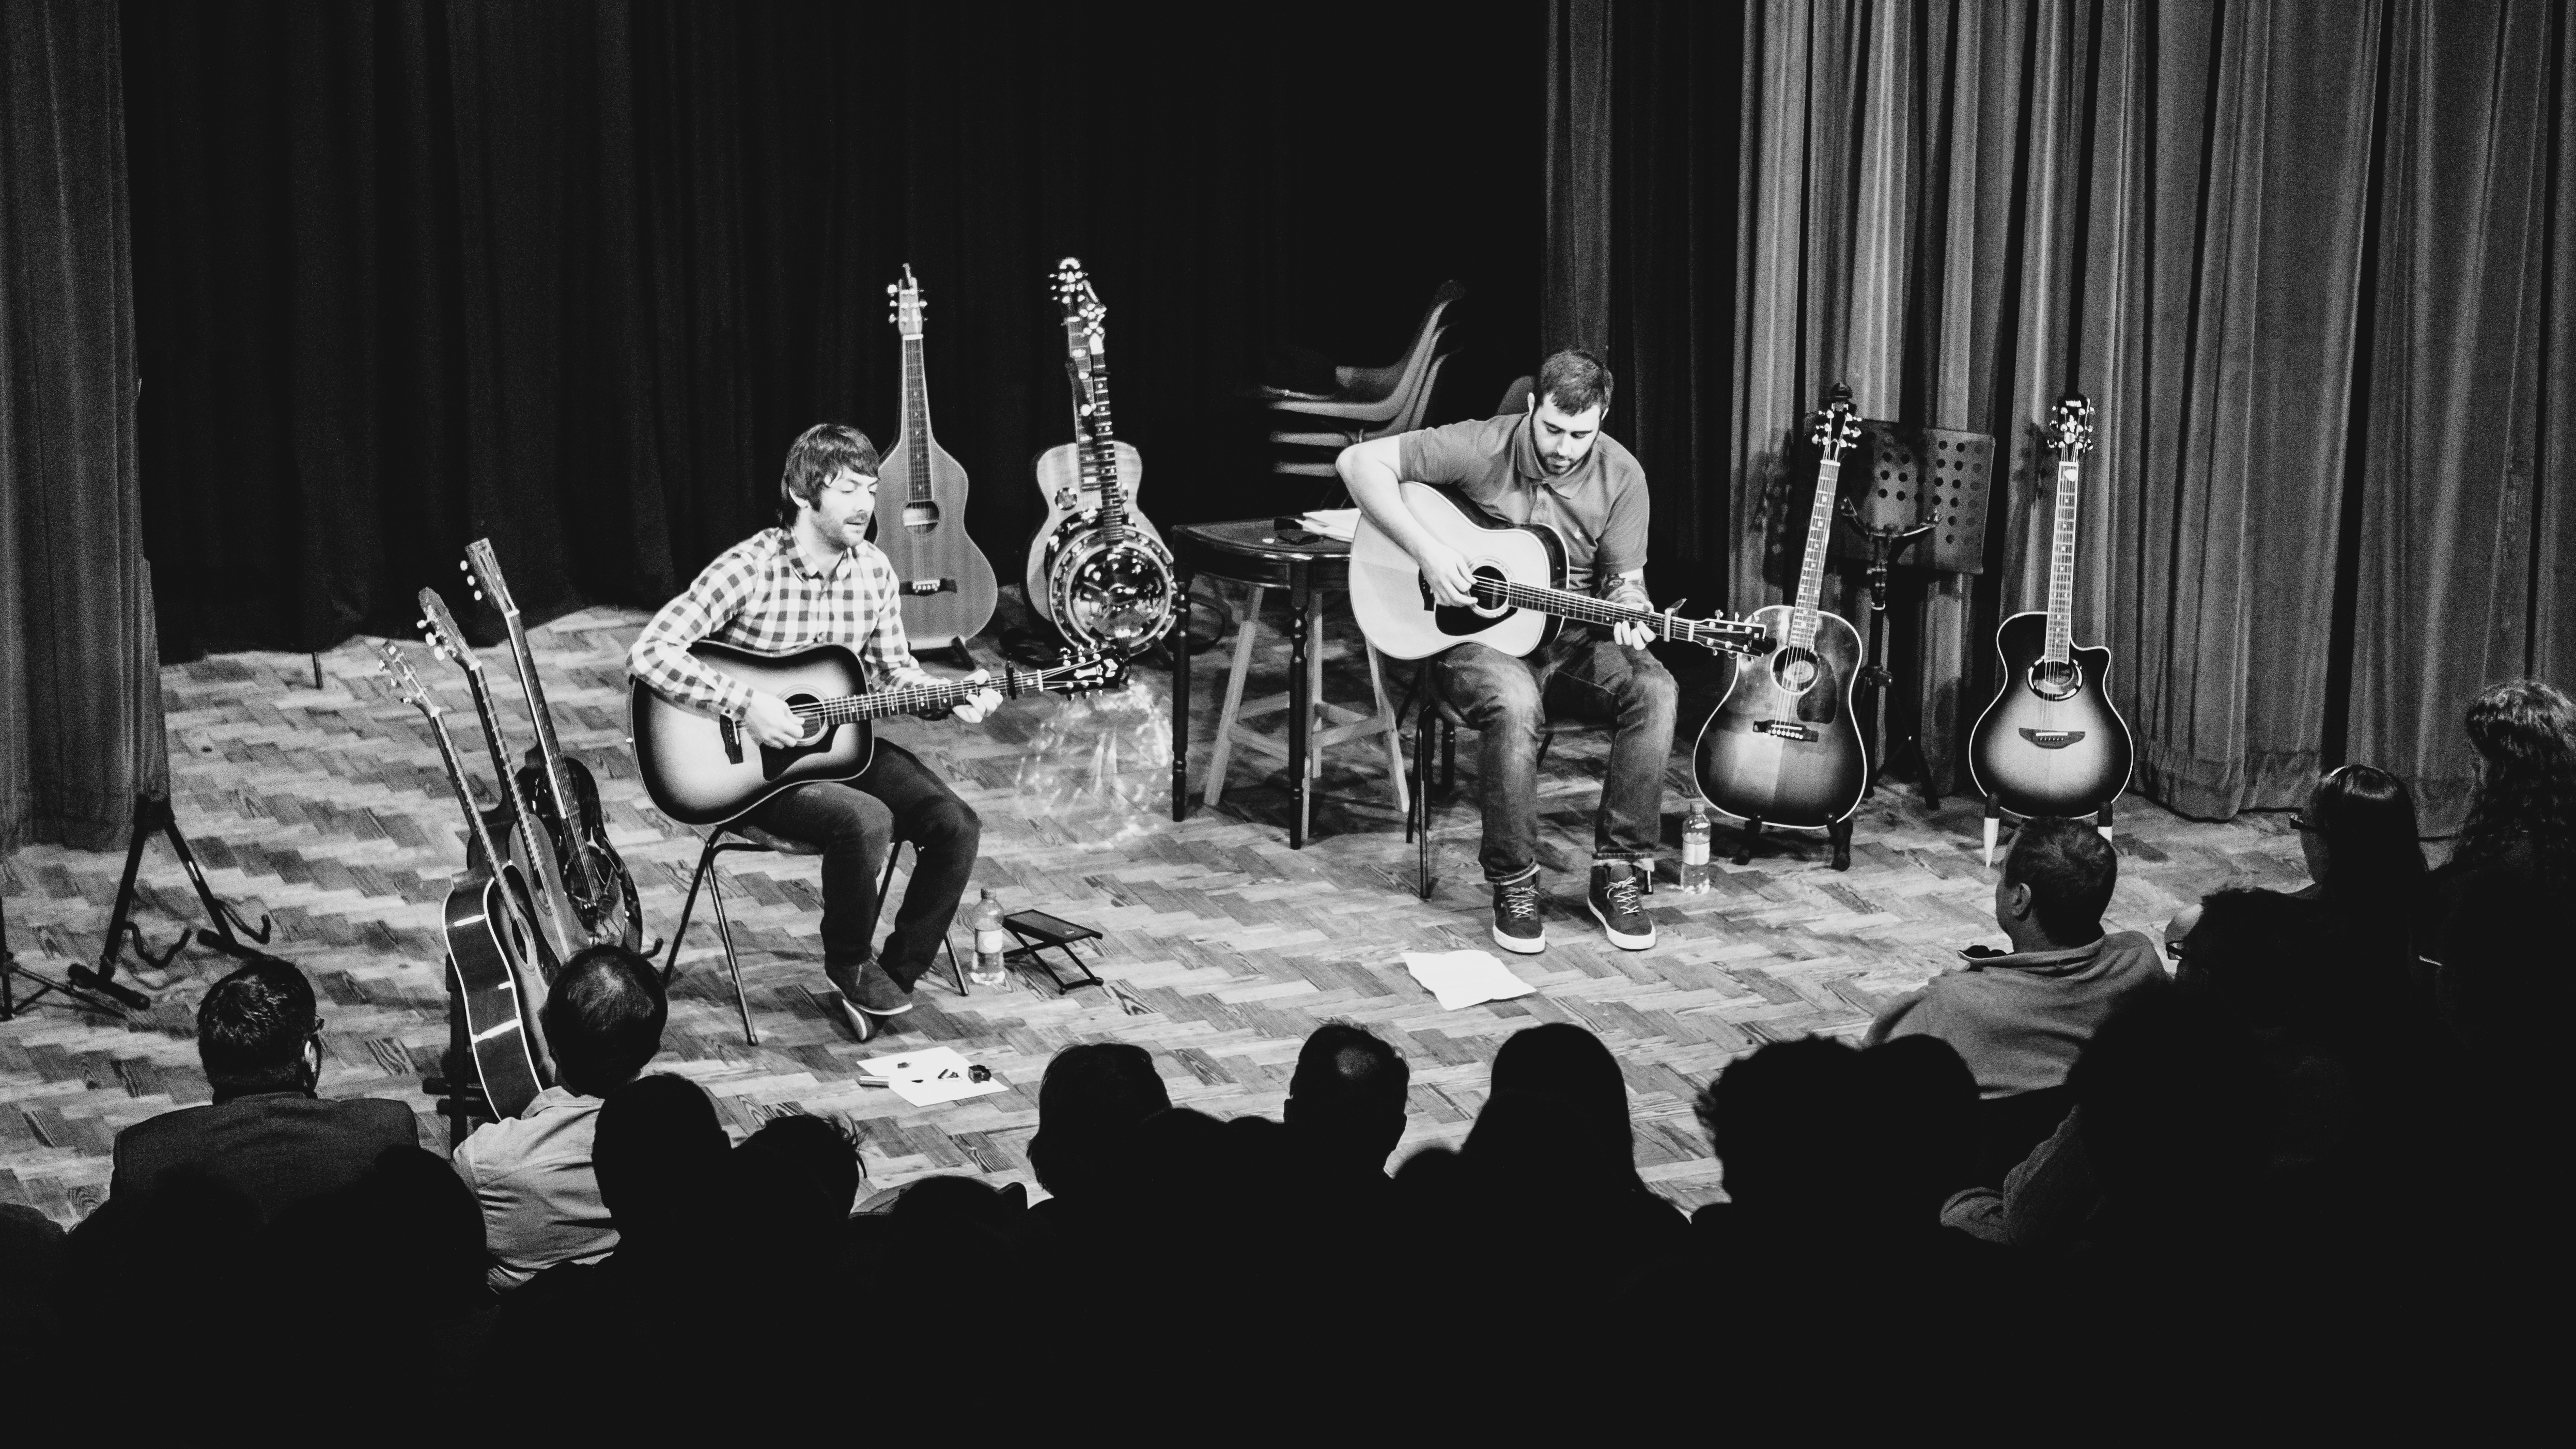 Chris Gray and Luke O'Reilly perform at the Unplugged concert (photo by Gary Weightman - Vannin Photos)